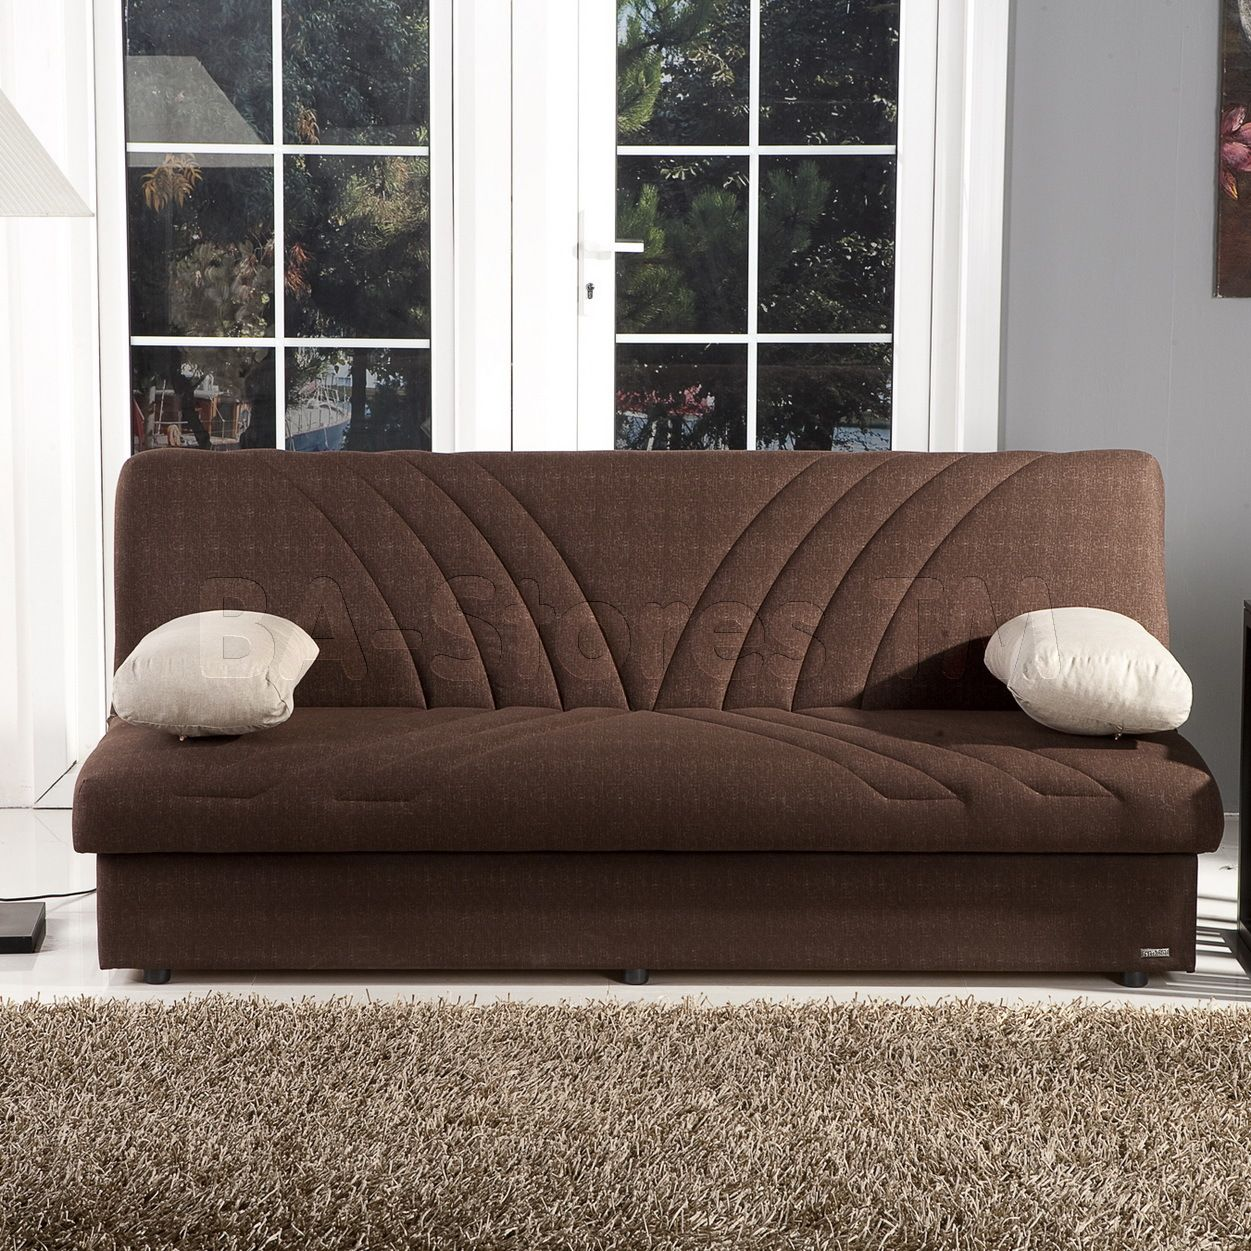 Fantasy Queen Convertible Sofa Bed In Marek Black By Istikbal | Urban  Futons   Urban Size Sofa Beds | Pinterest | Fantasy Queen, Standard Queen  Size Bed And ...